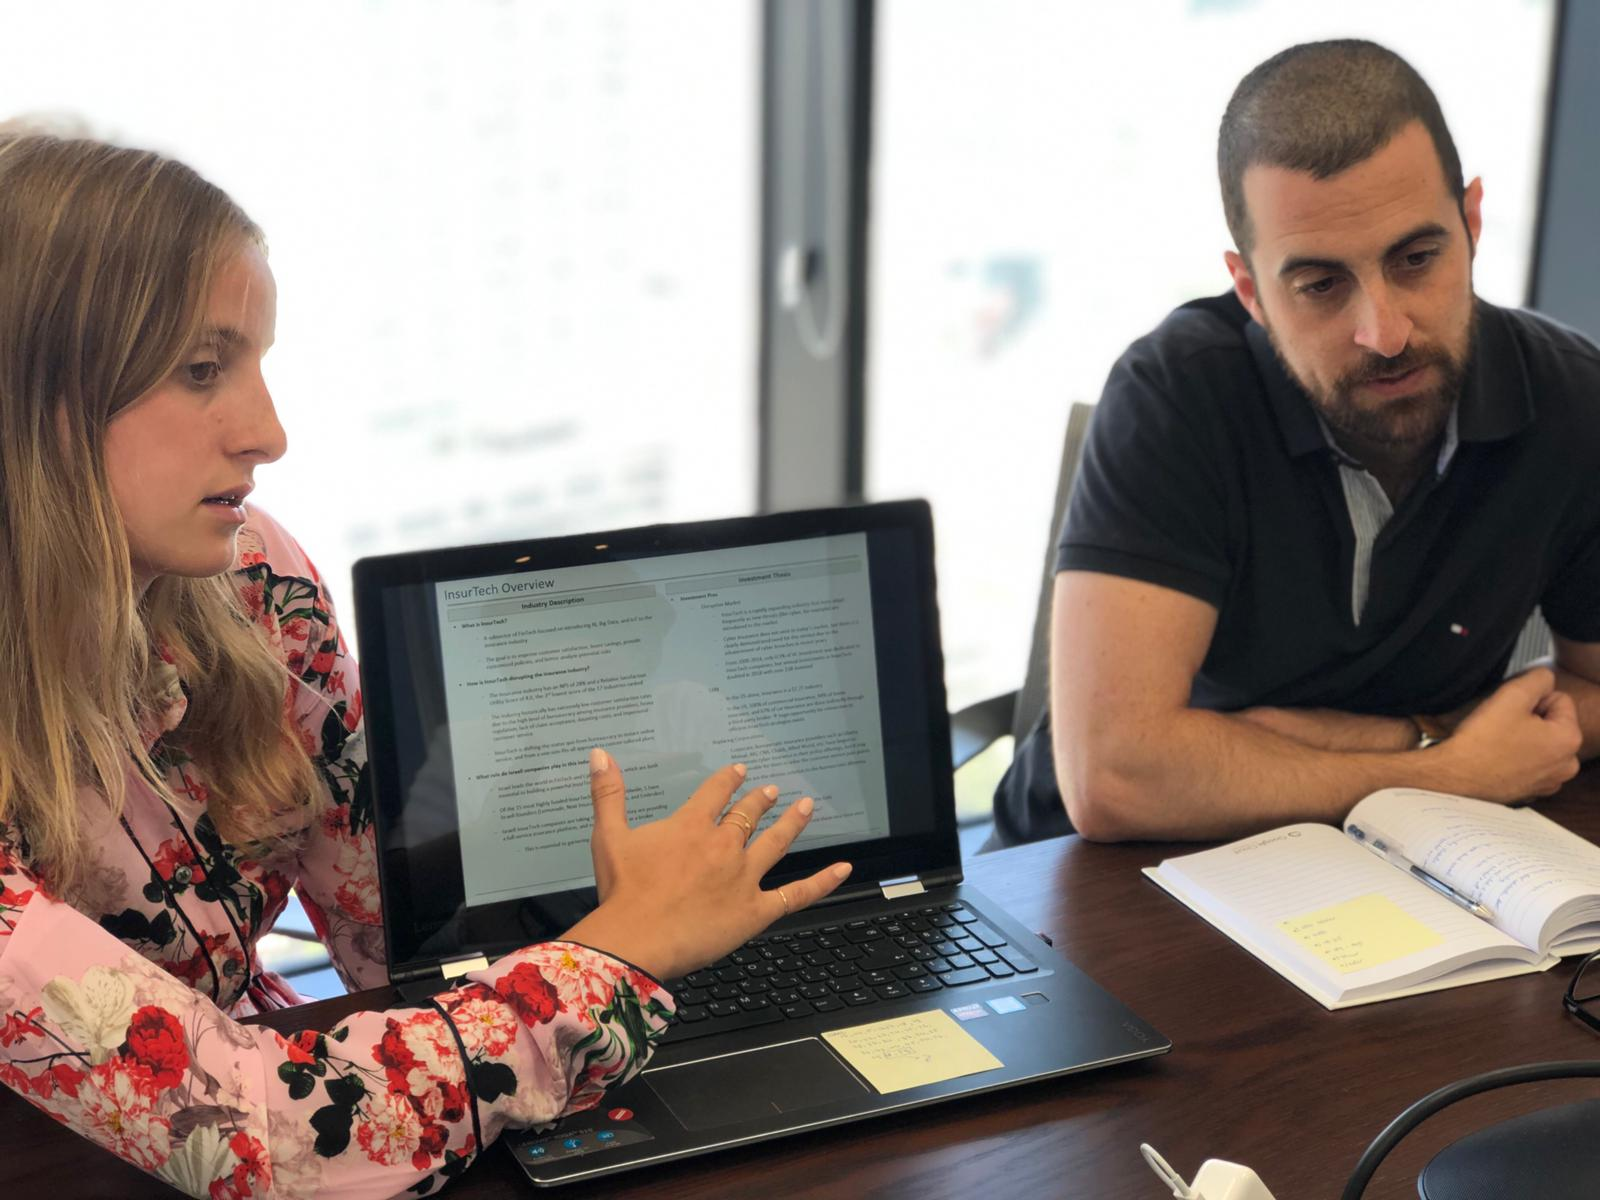 Birthright's Excel program gets high marks all around - JNS org